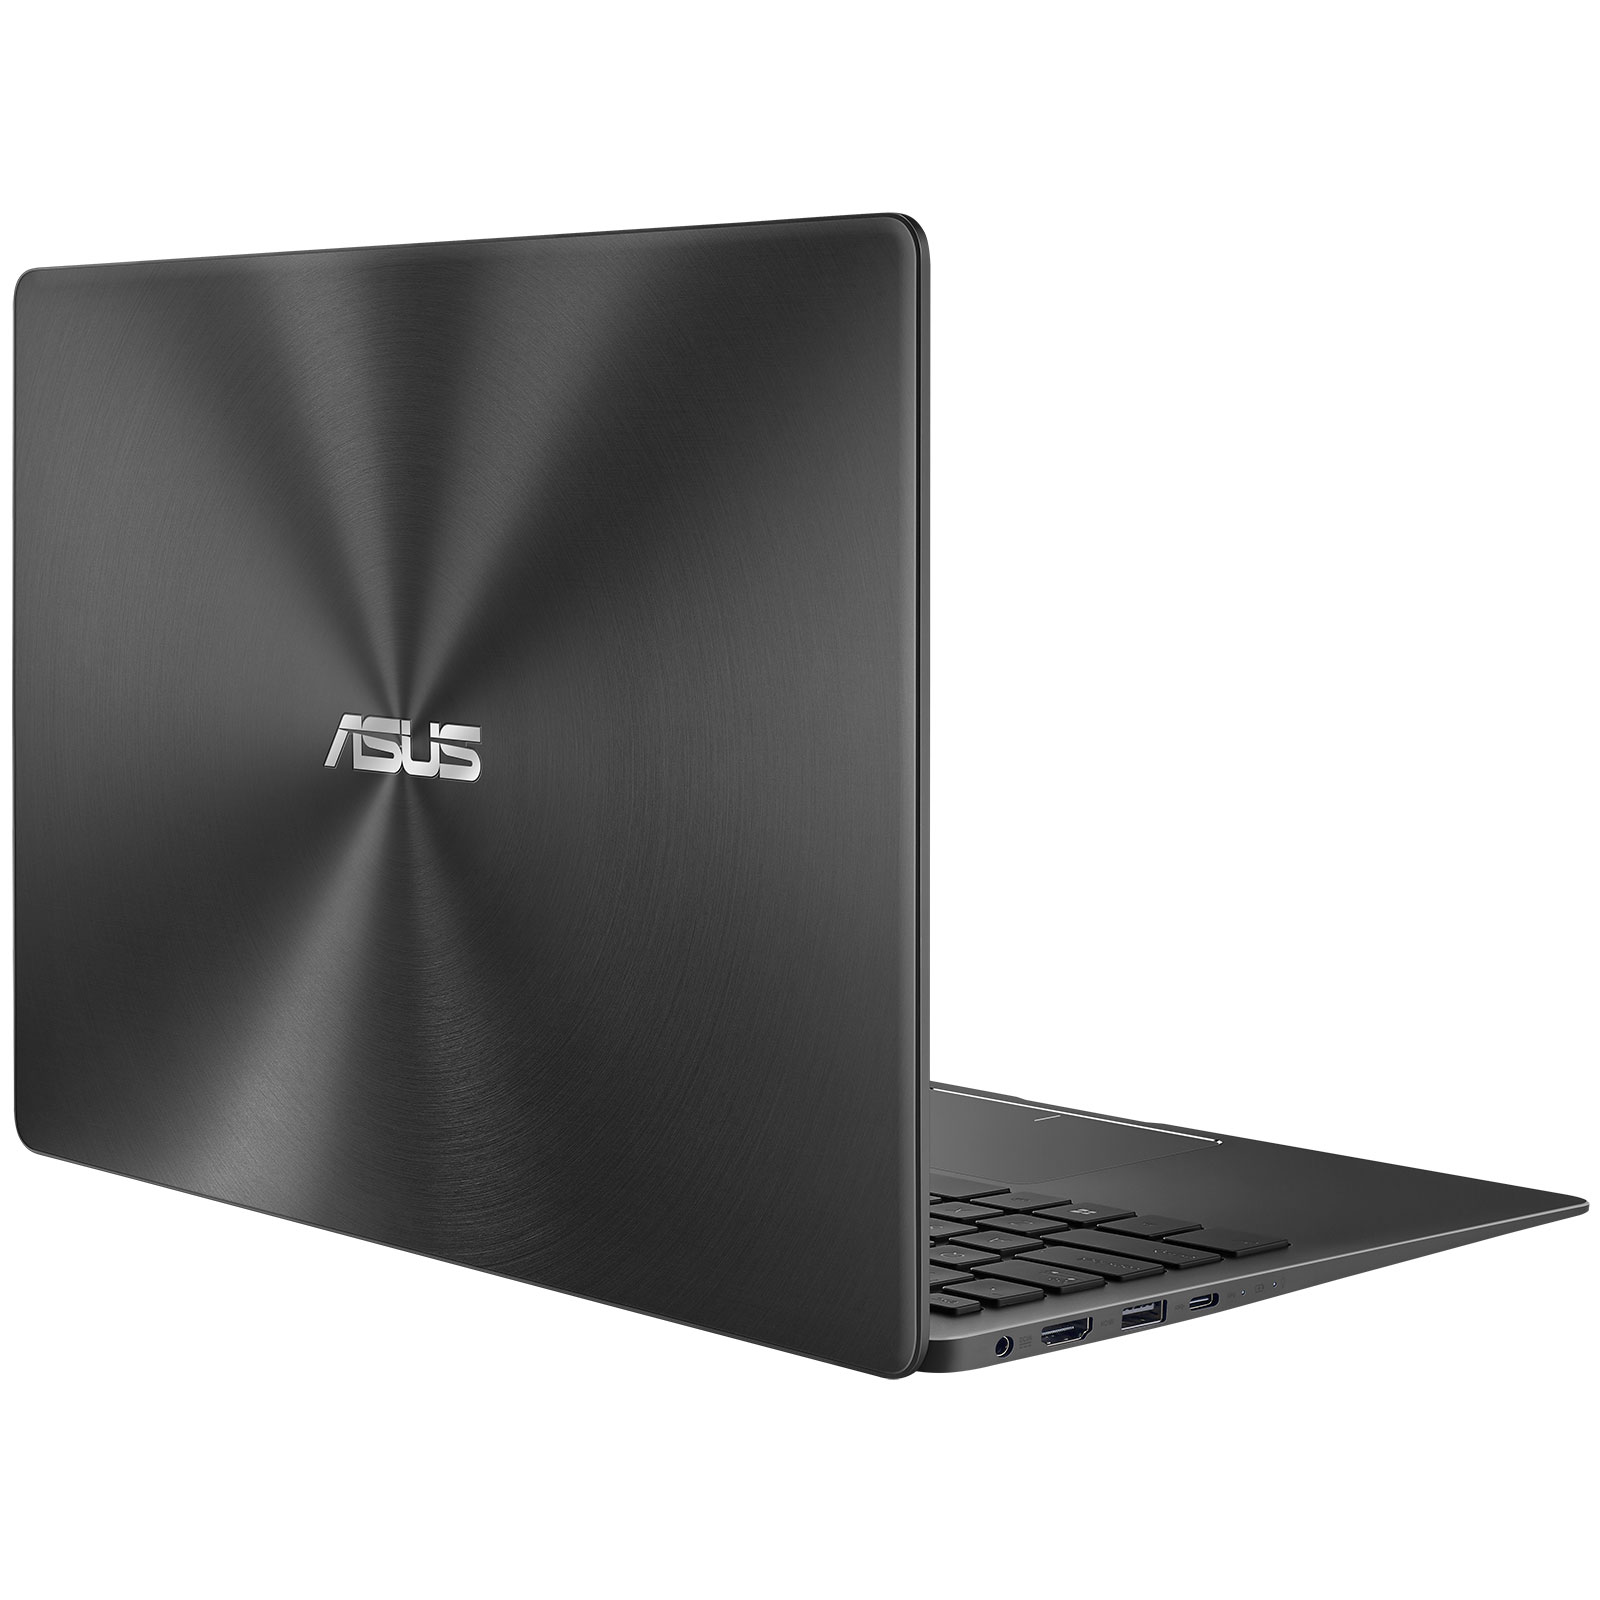 Asus 90NB0GZ2-M01970 - PC portable Asus - Cybertek.fr - 2